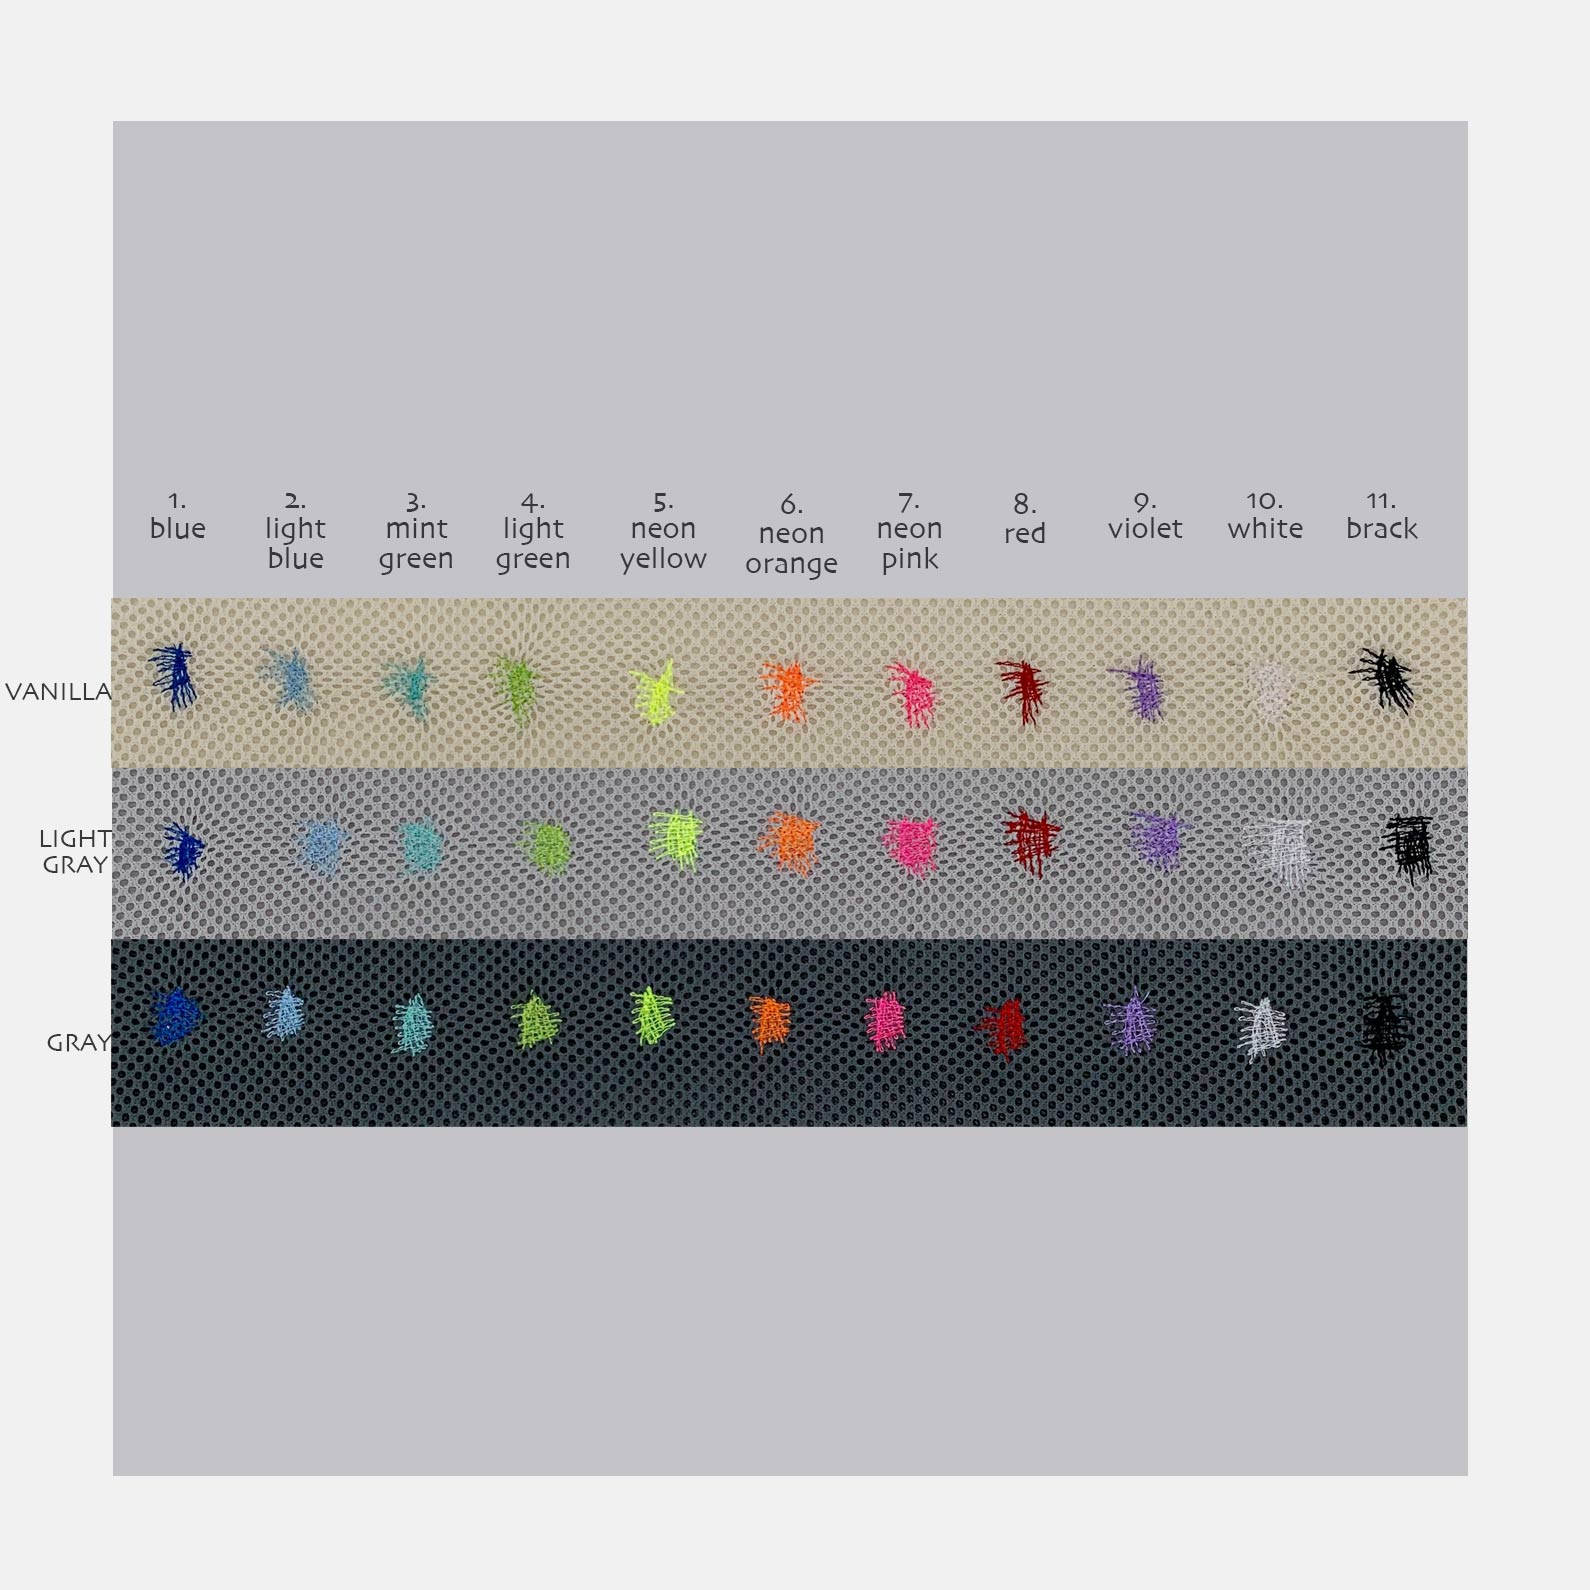 Washable fit Mask vanilla/light gray/gray<br>( 3color options )<br>(刺繍11color options)<br>unisex